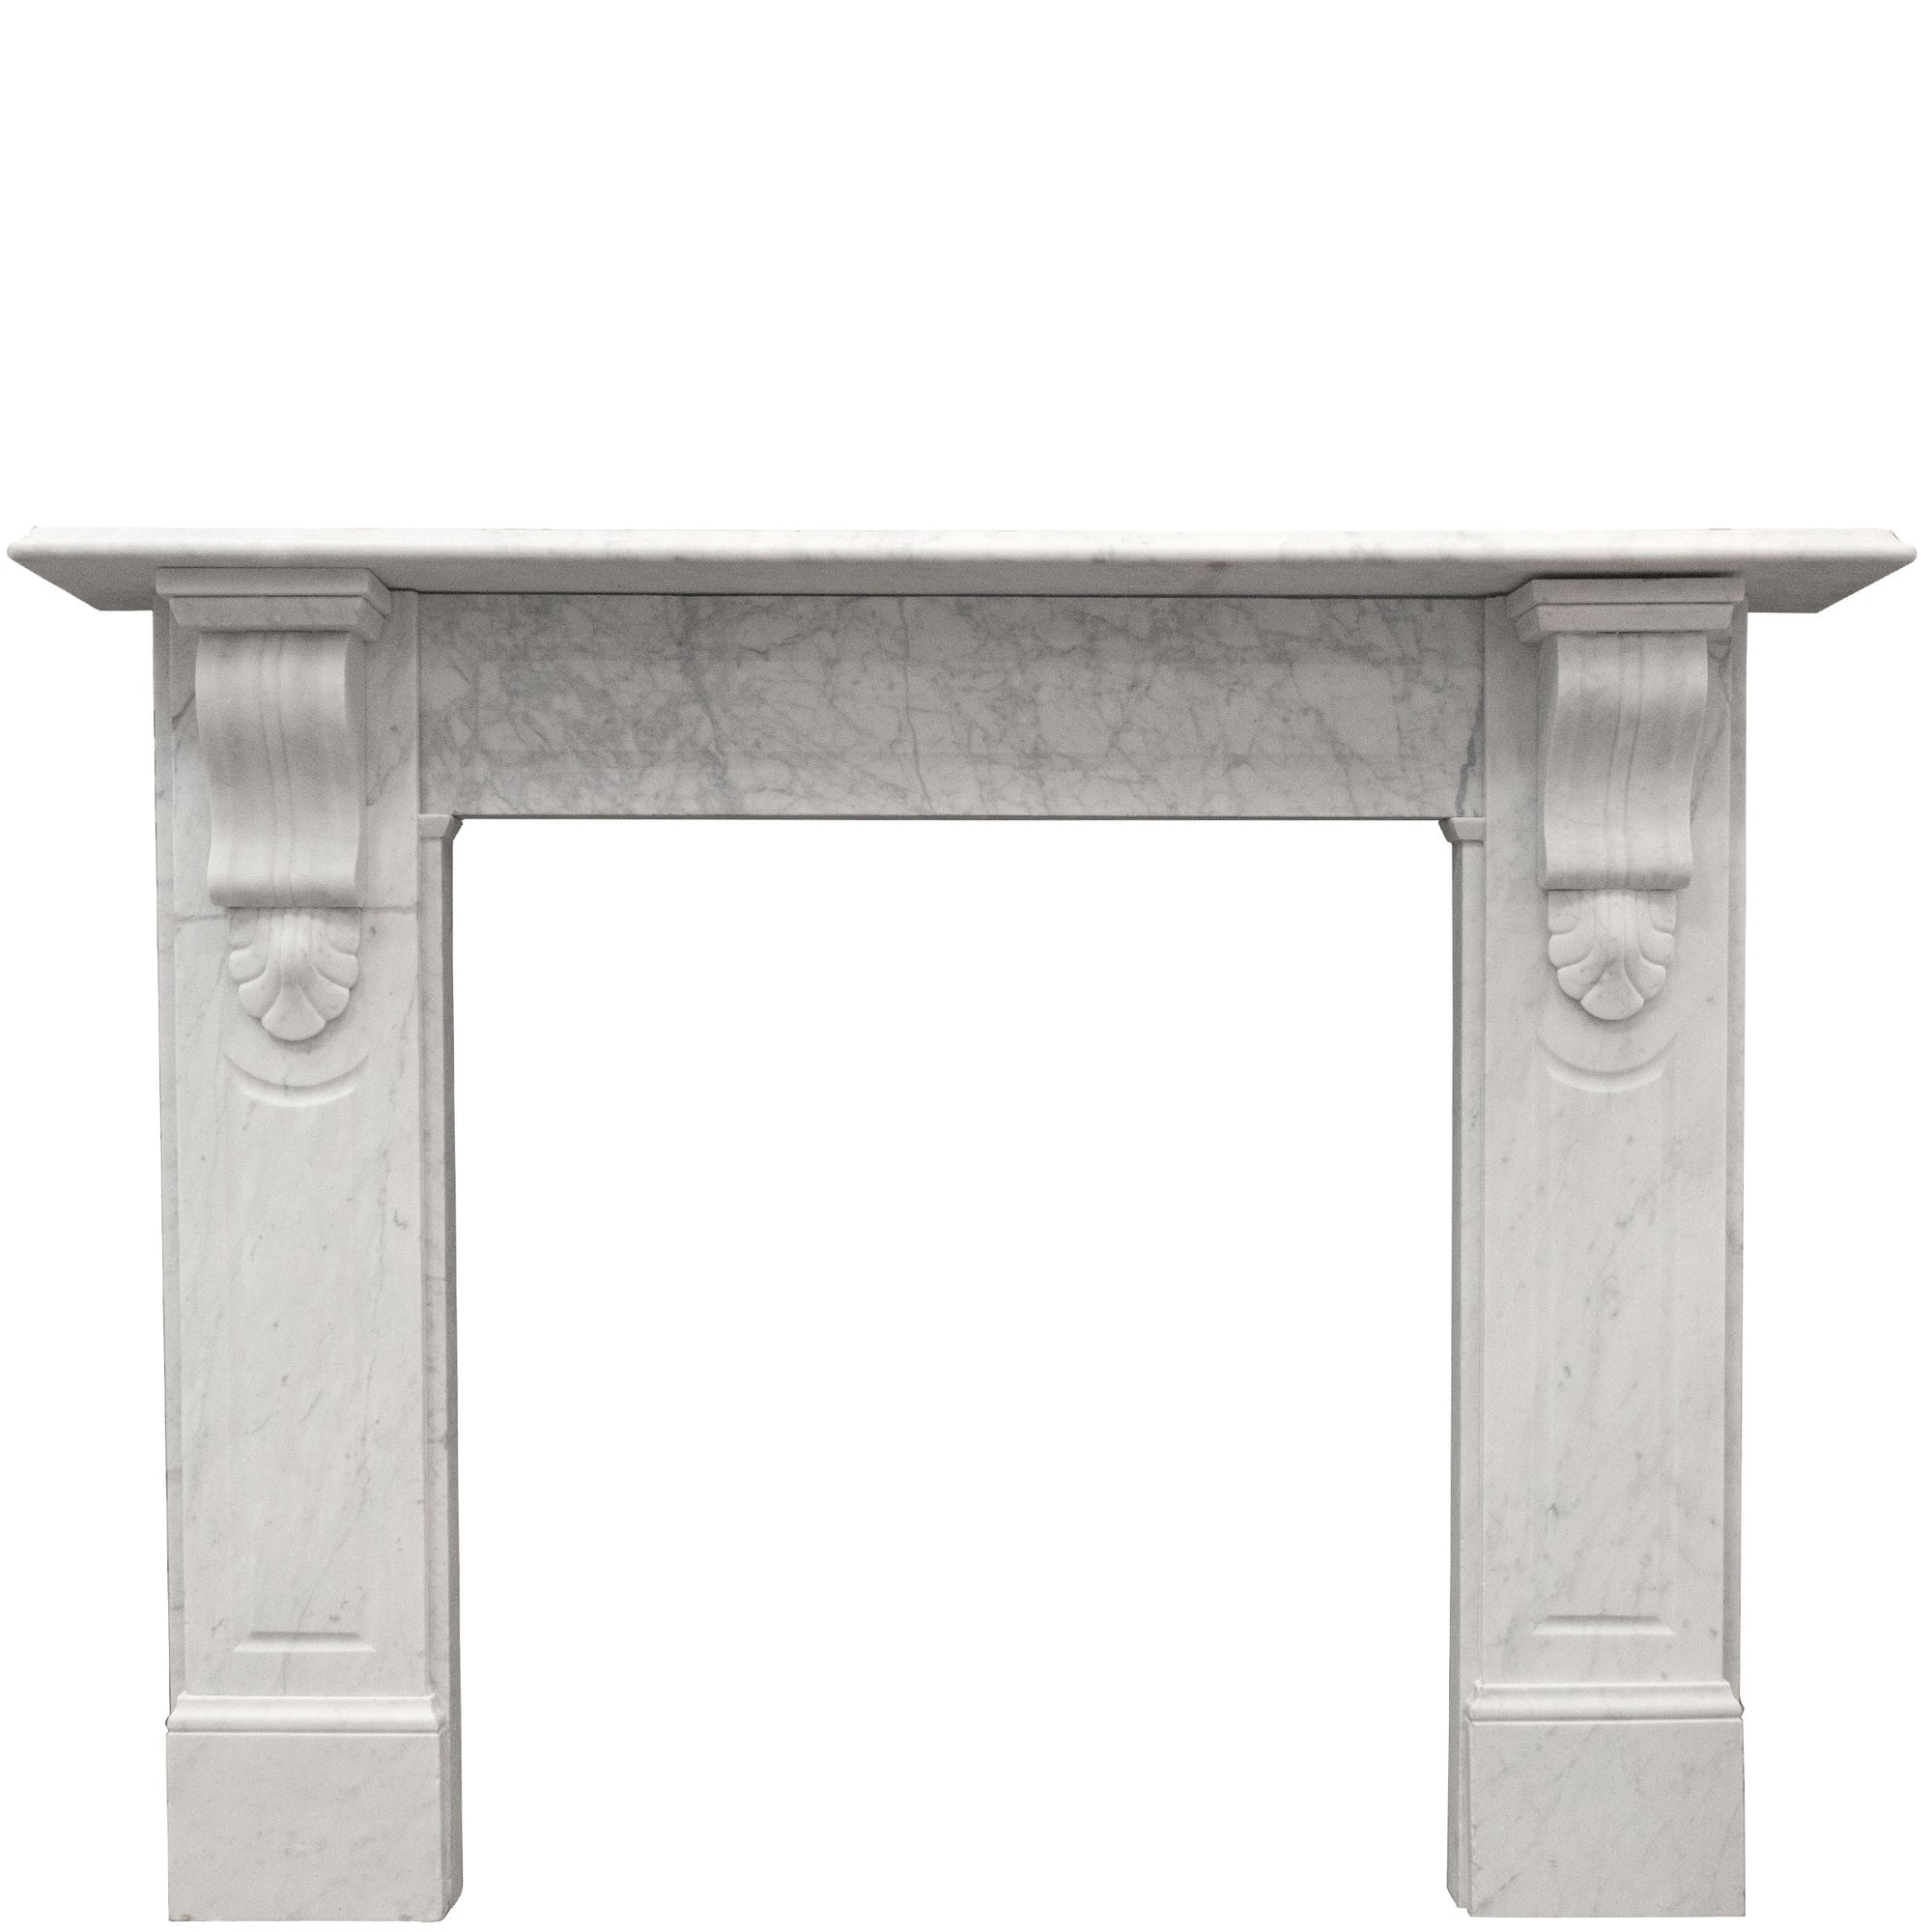 Antique Victorian Carrara Marble Corbel Fireplace Surround - The Architectural Forum